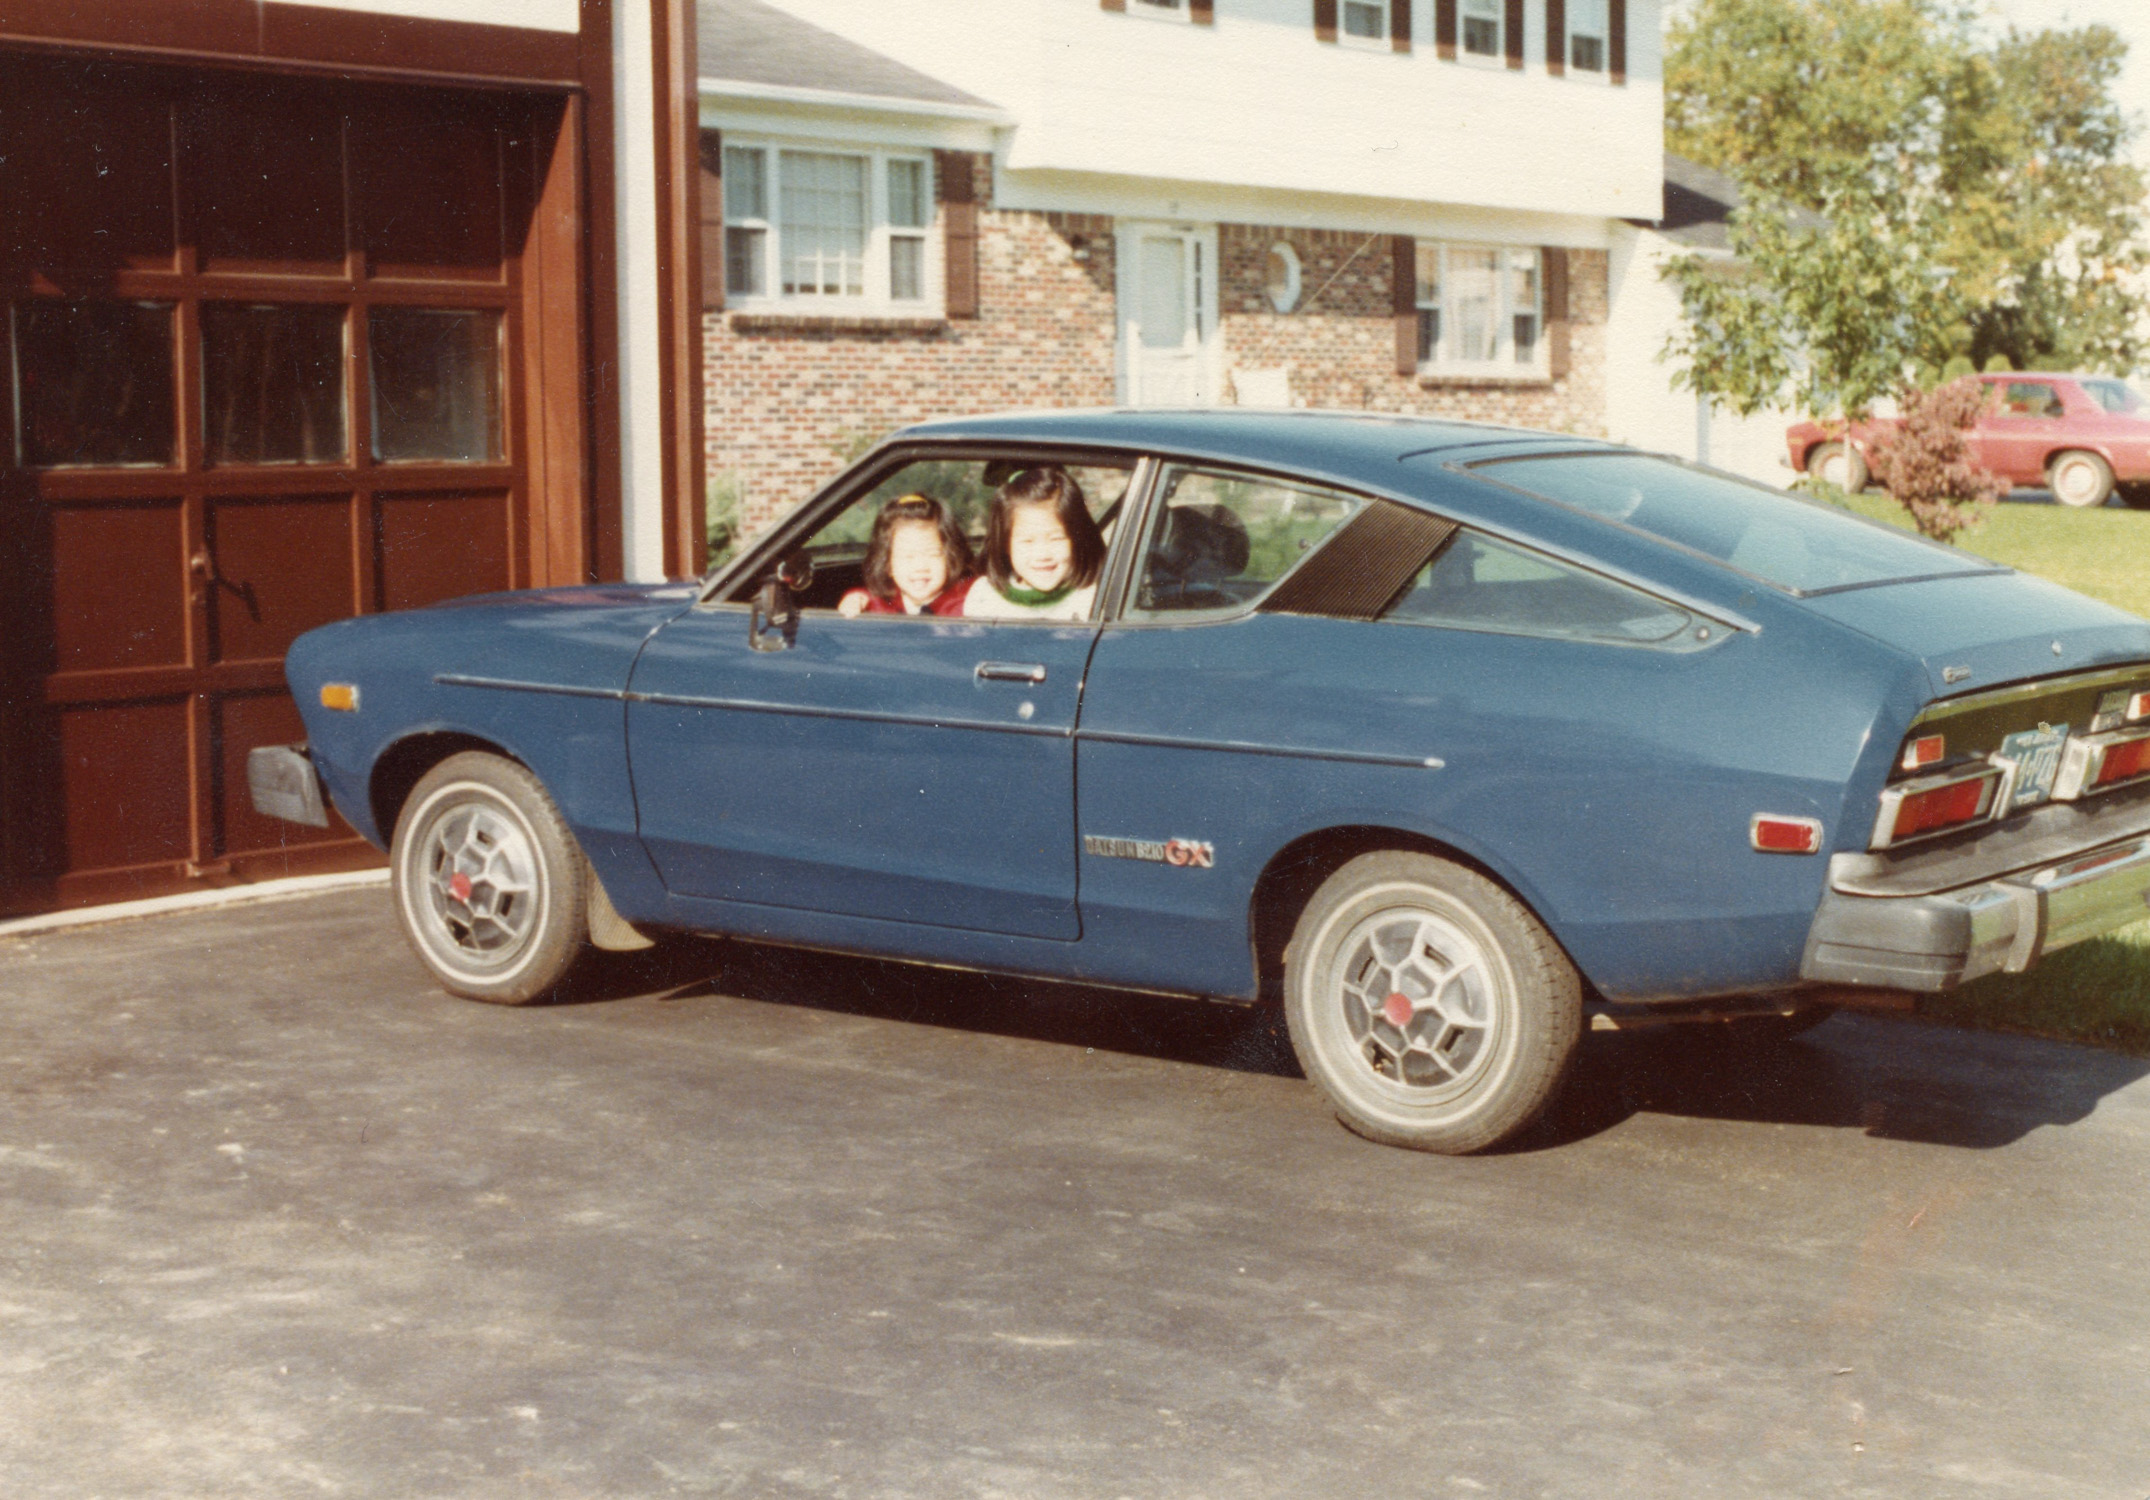 My sister and I playing in the family Datsun.